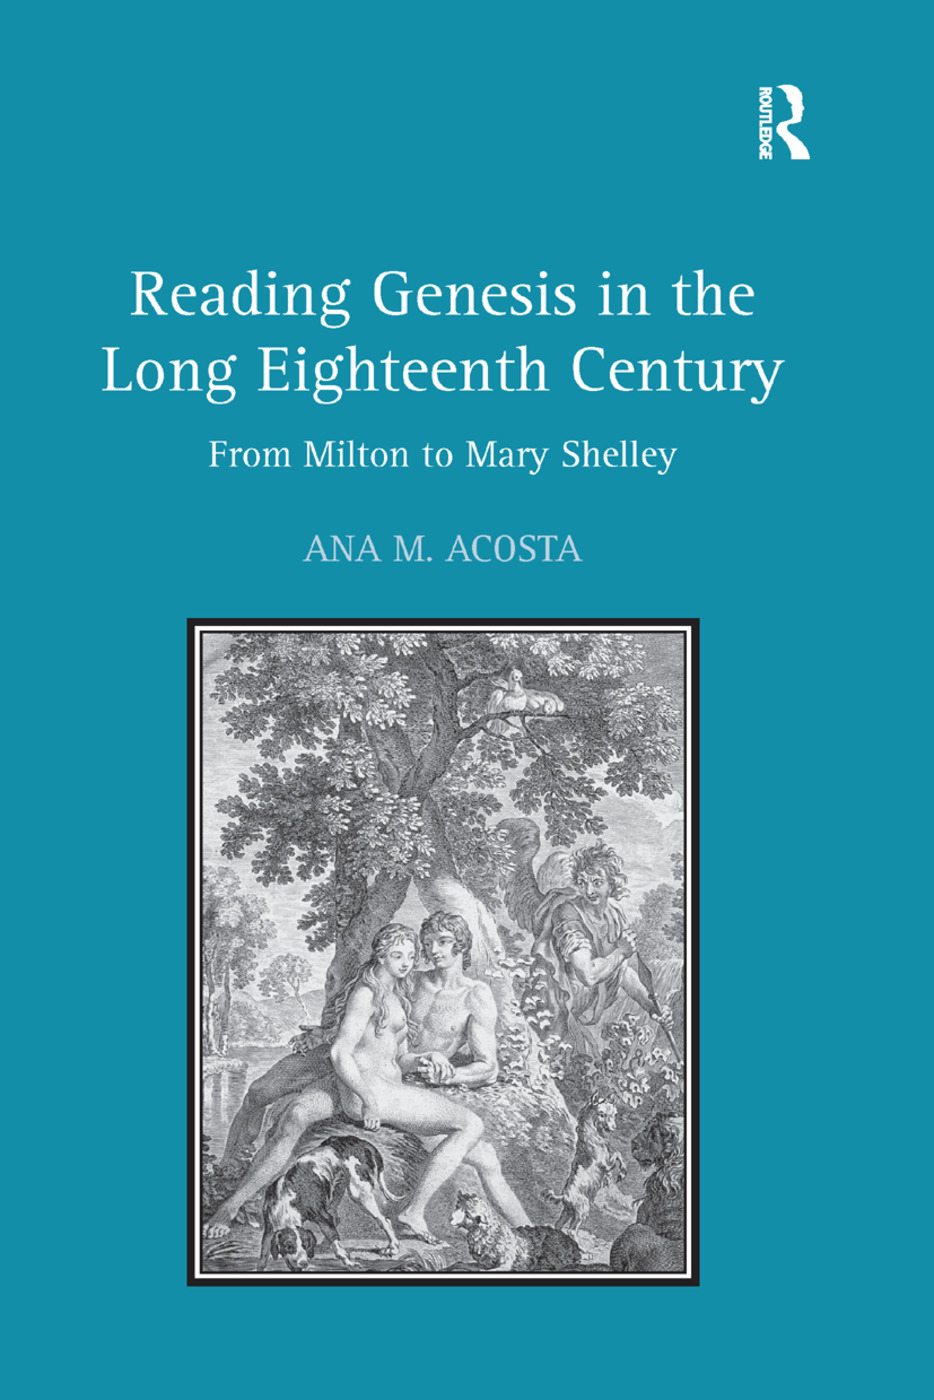 Reading Genesis in the Long Eighteenth Century: From Milton to Mary Shelley book cover